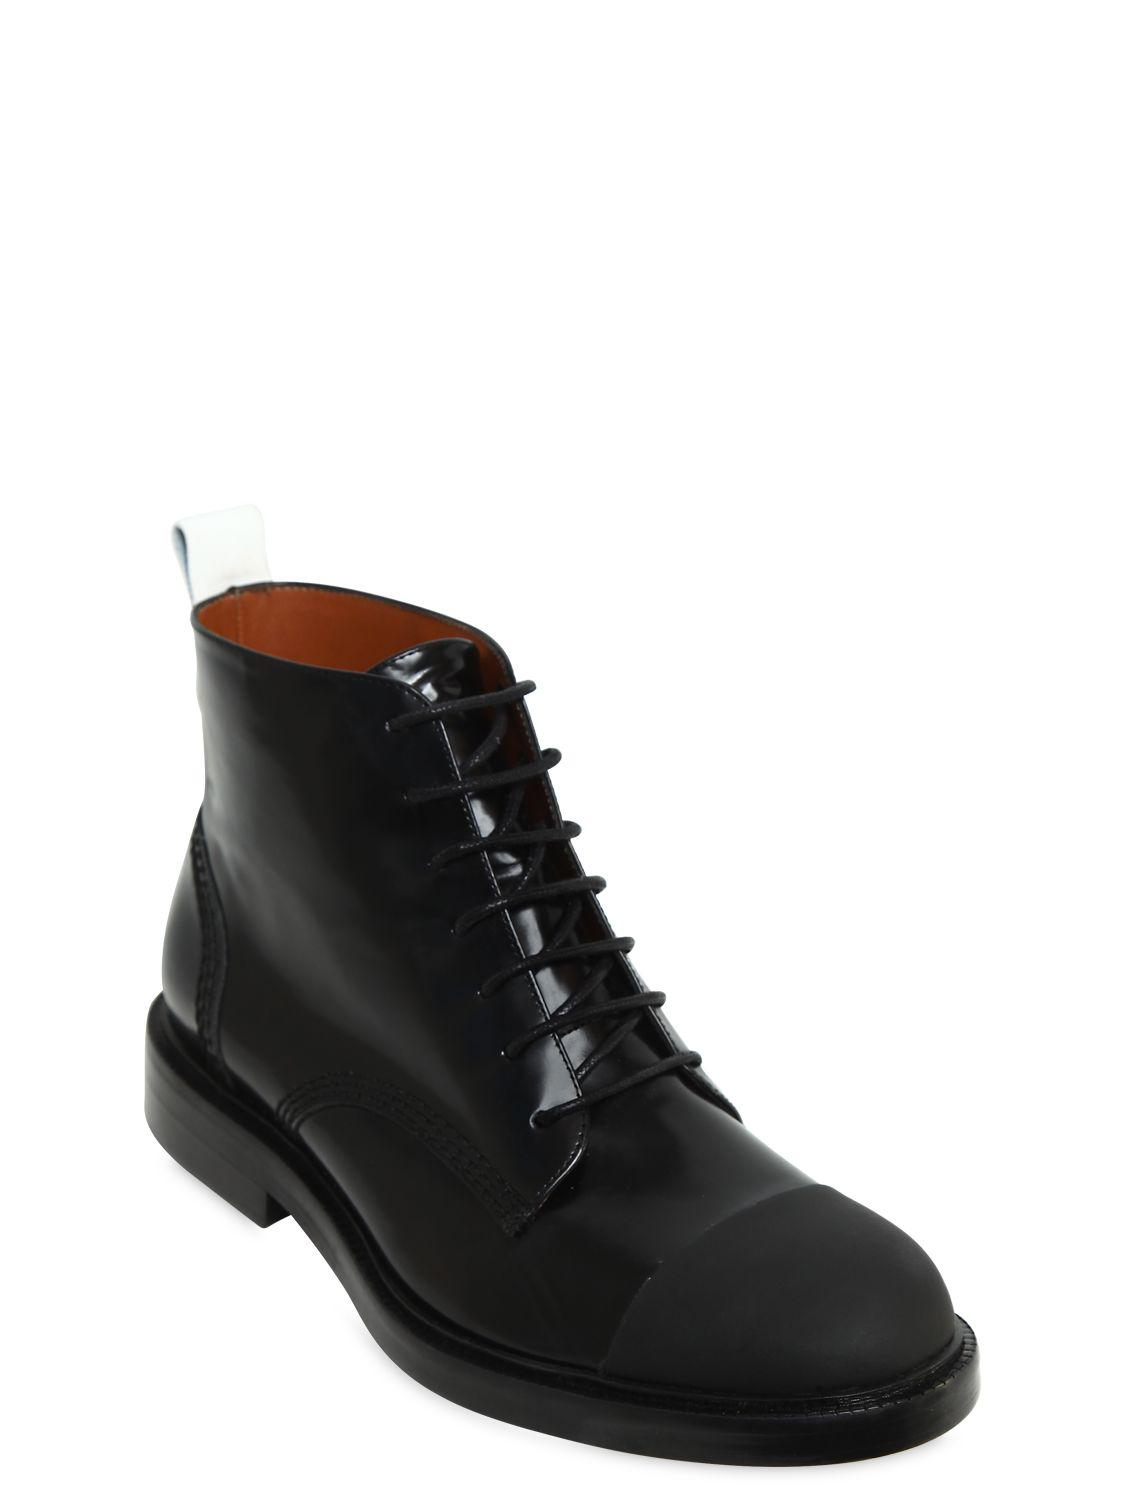 Joseph 20MM BRUSHED LEATHER ANKLE BOOTS y7Ls8